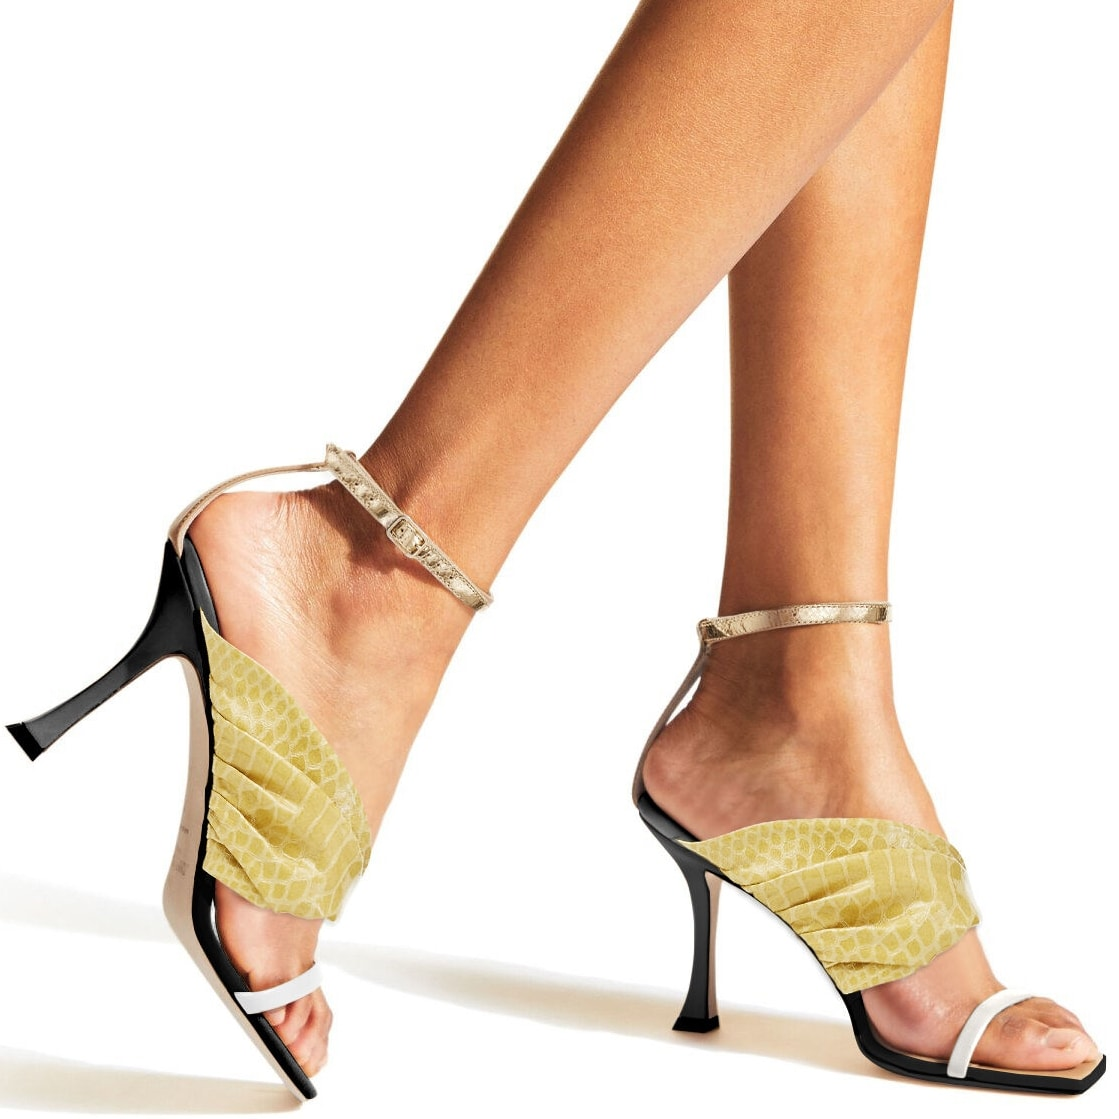 Colorful gel snake printed leather sandals with wide ruched sunbleached nappa leather detailing, a delicate latte strap across the toe, a refined gold-tone ankle strap and buckle fastening